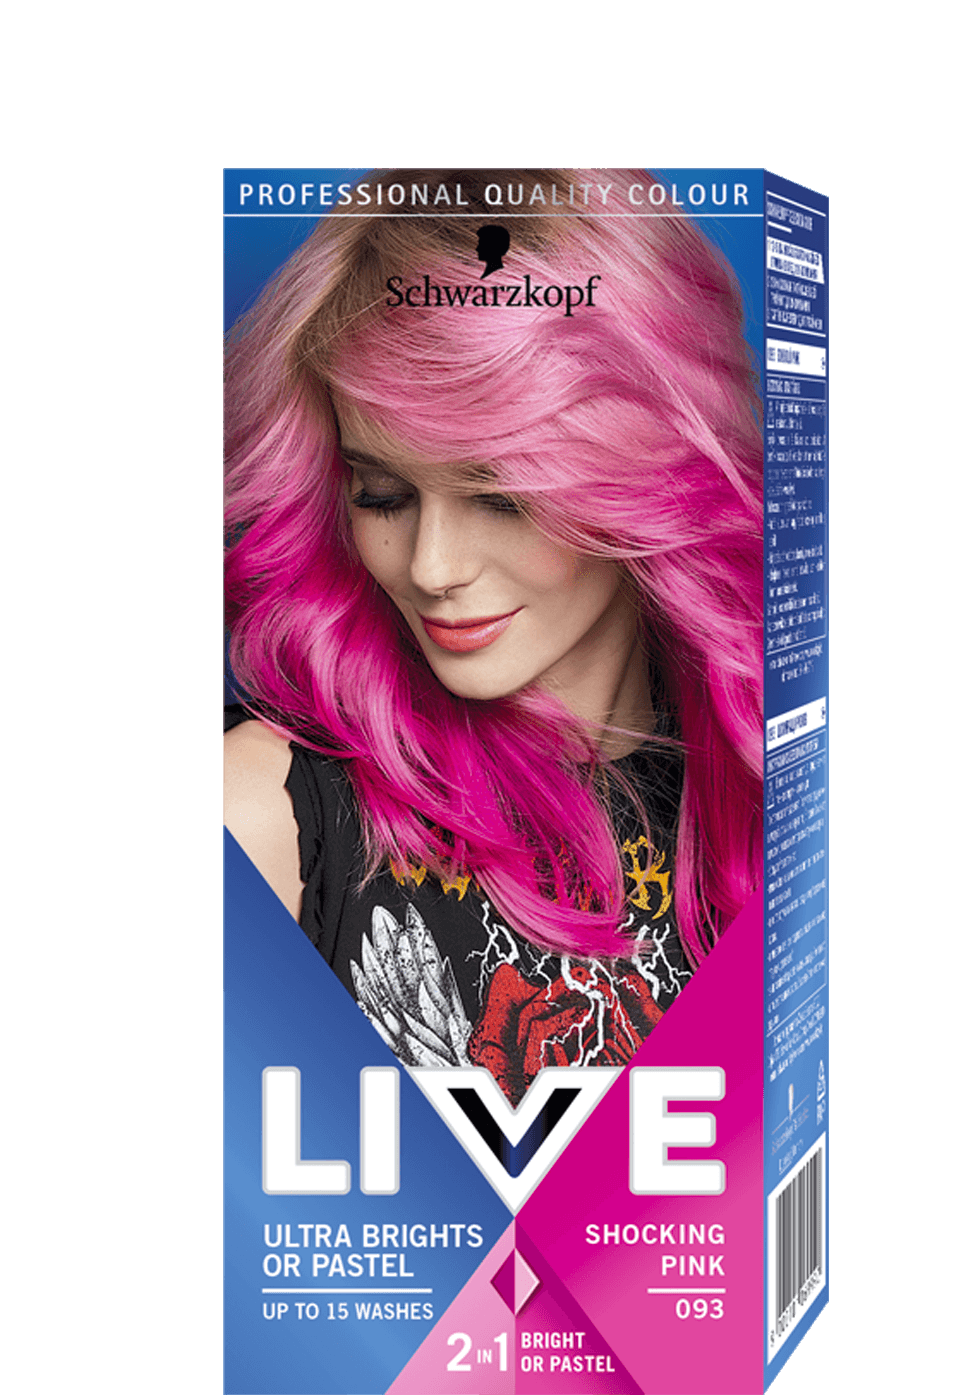 live_color_uk_ultra_brights_pastel_shocking_pink_970x1400